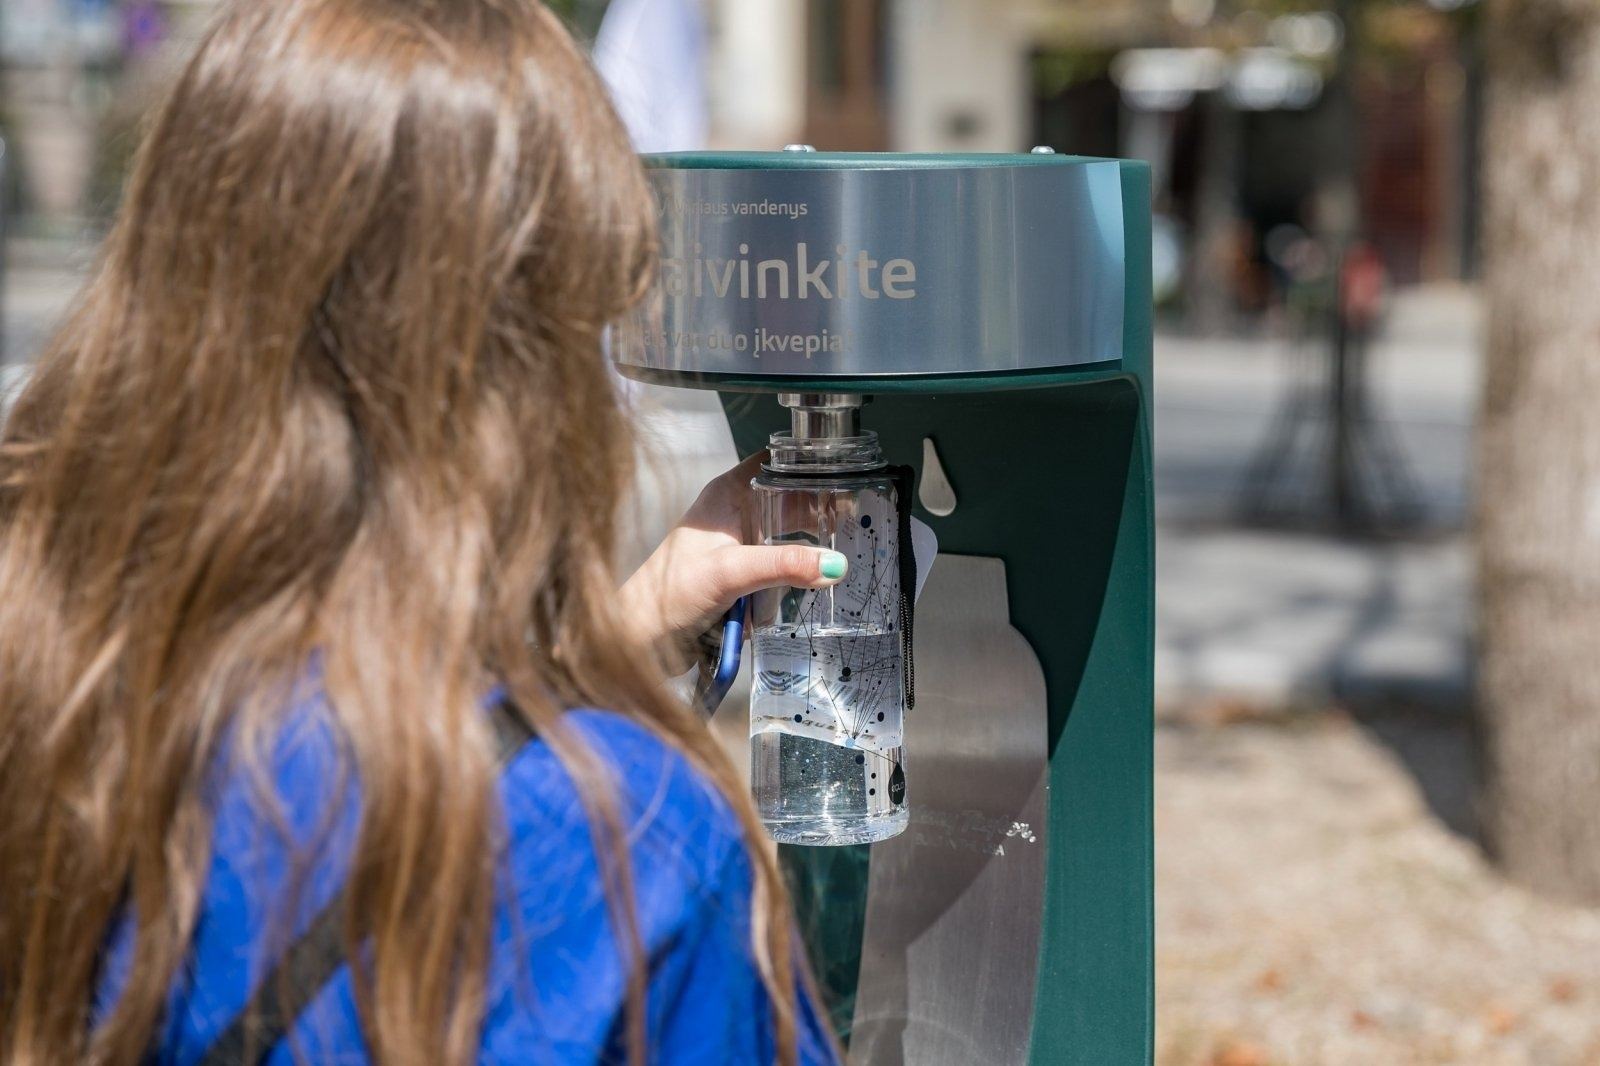 Girl with brown hair refilling her water bottle at the new public drinking fountain in Vilnius, Lithuania